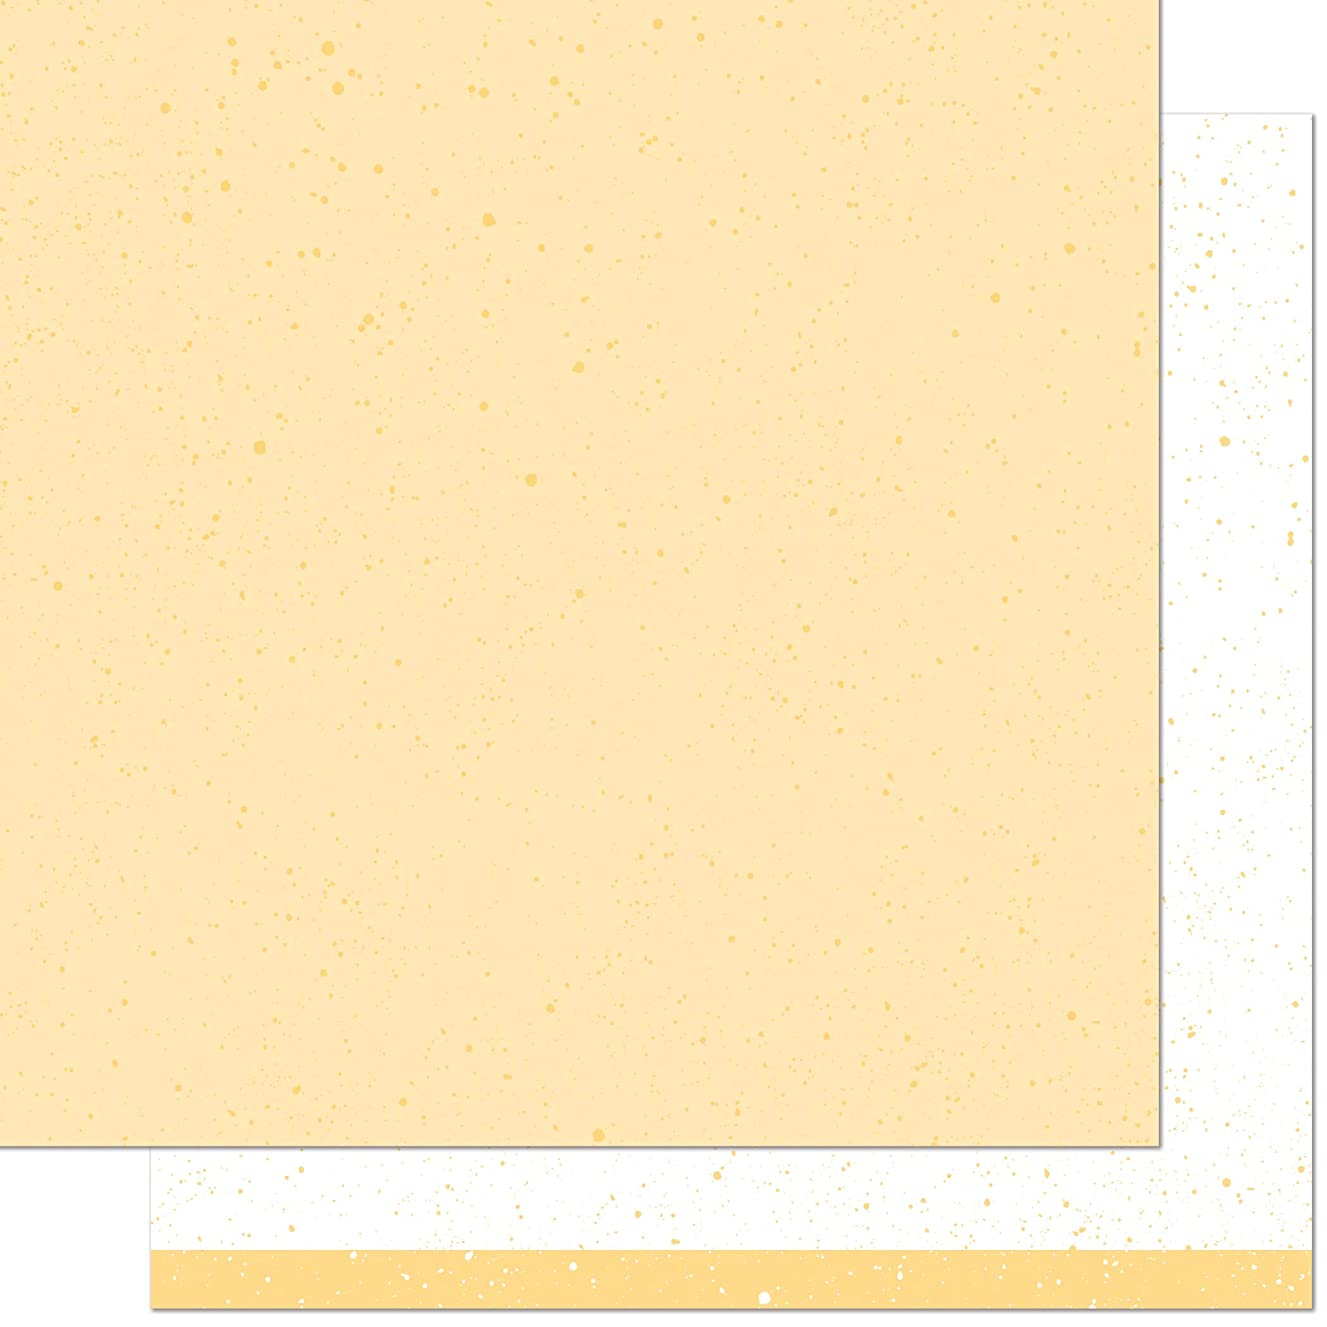 Lawn Fawn LF1863 Ripe Banana 12x12 Patterned Paper (Pack of 12)